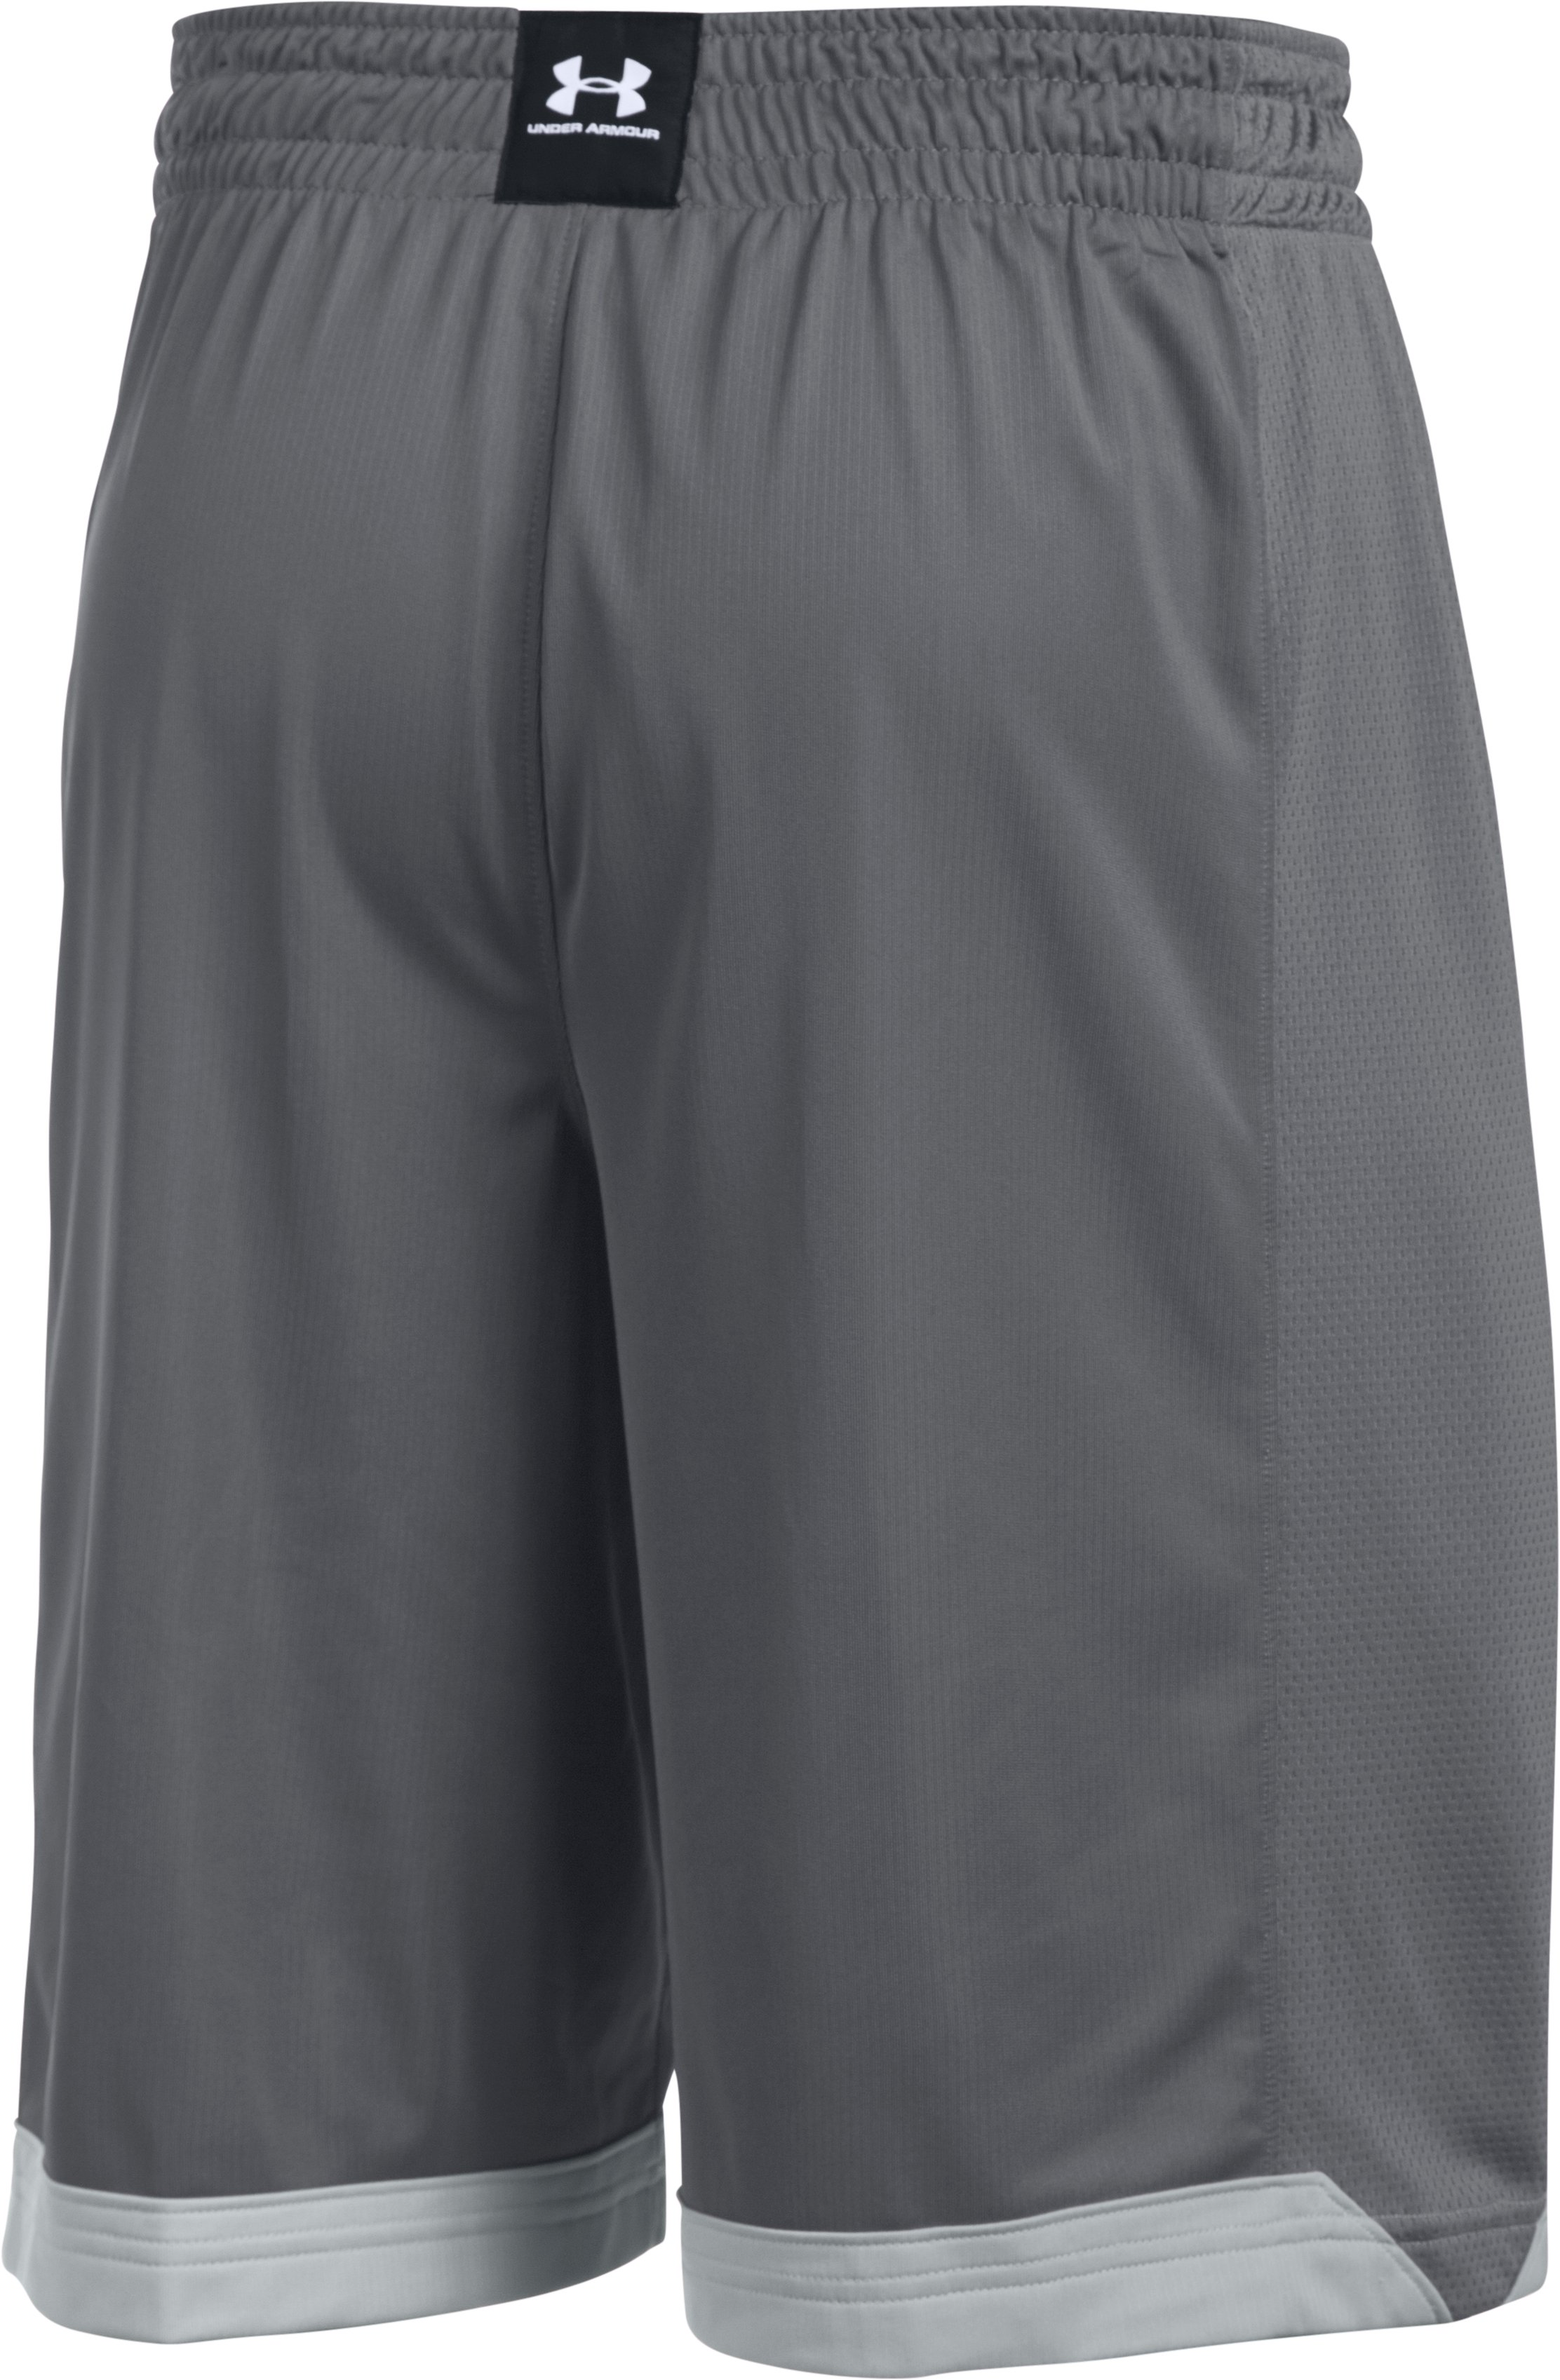 Men's UA Isolation Basketball Shorts, Graphite, undefined